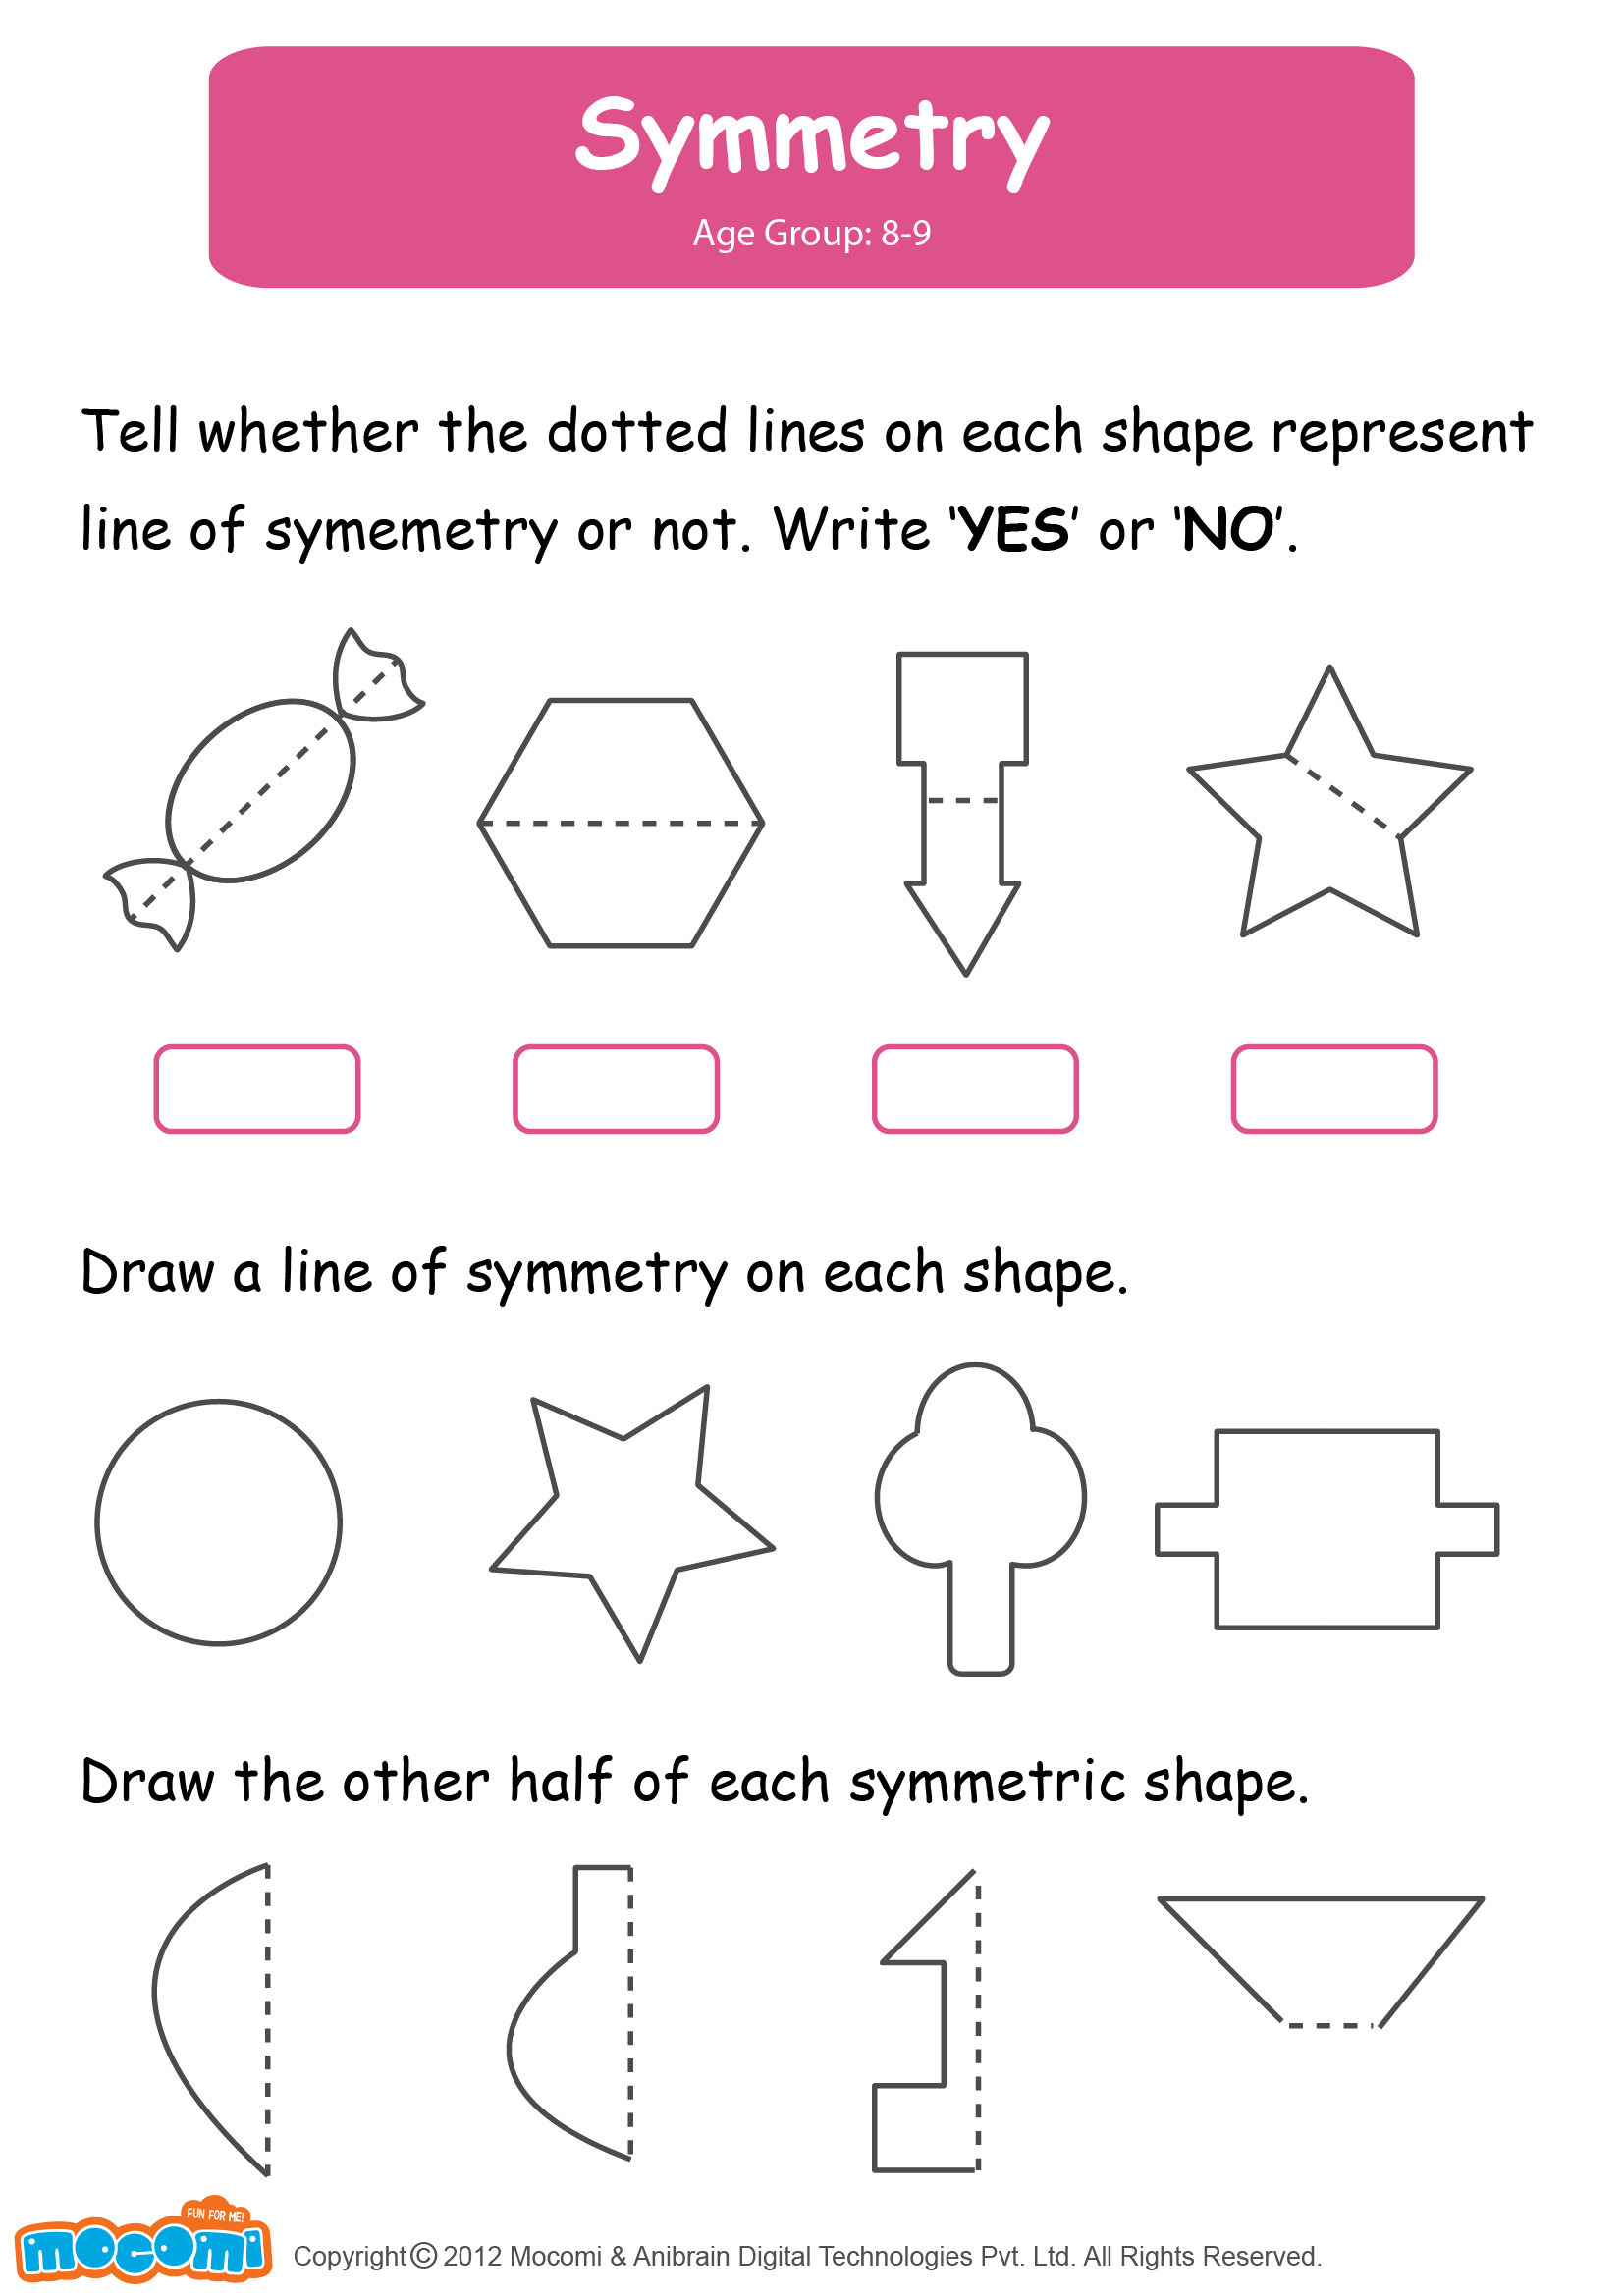 worksheet Rotation Math Worksheets symmetry math worksheet for kids more interesting maths worksheets and activities kids